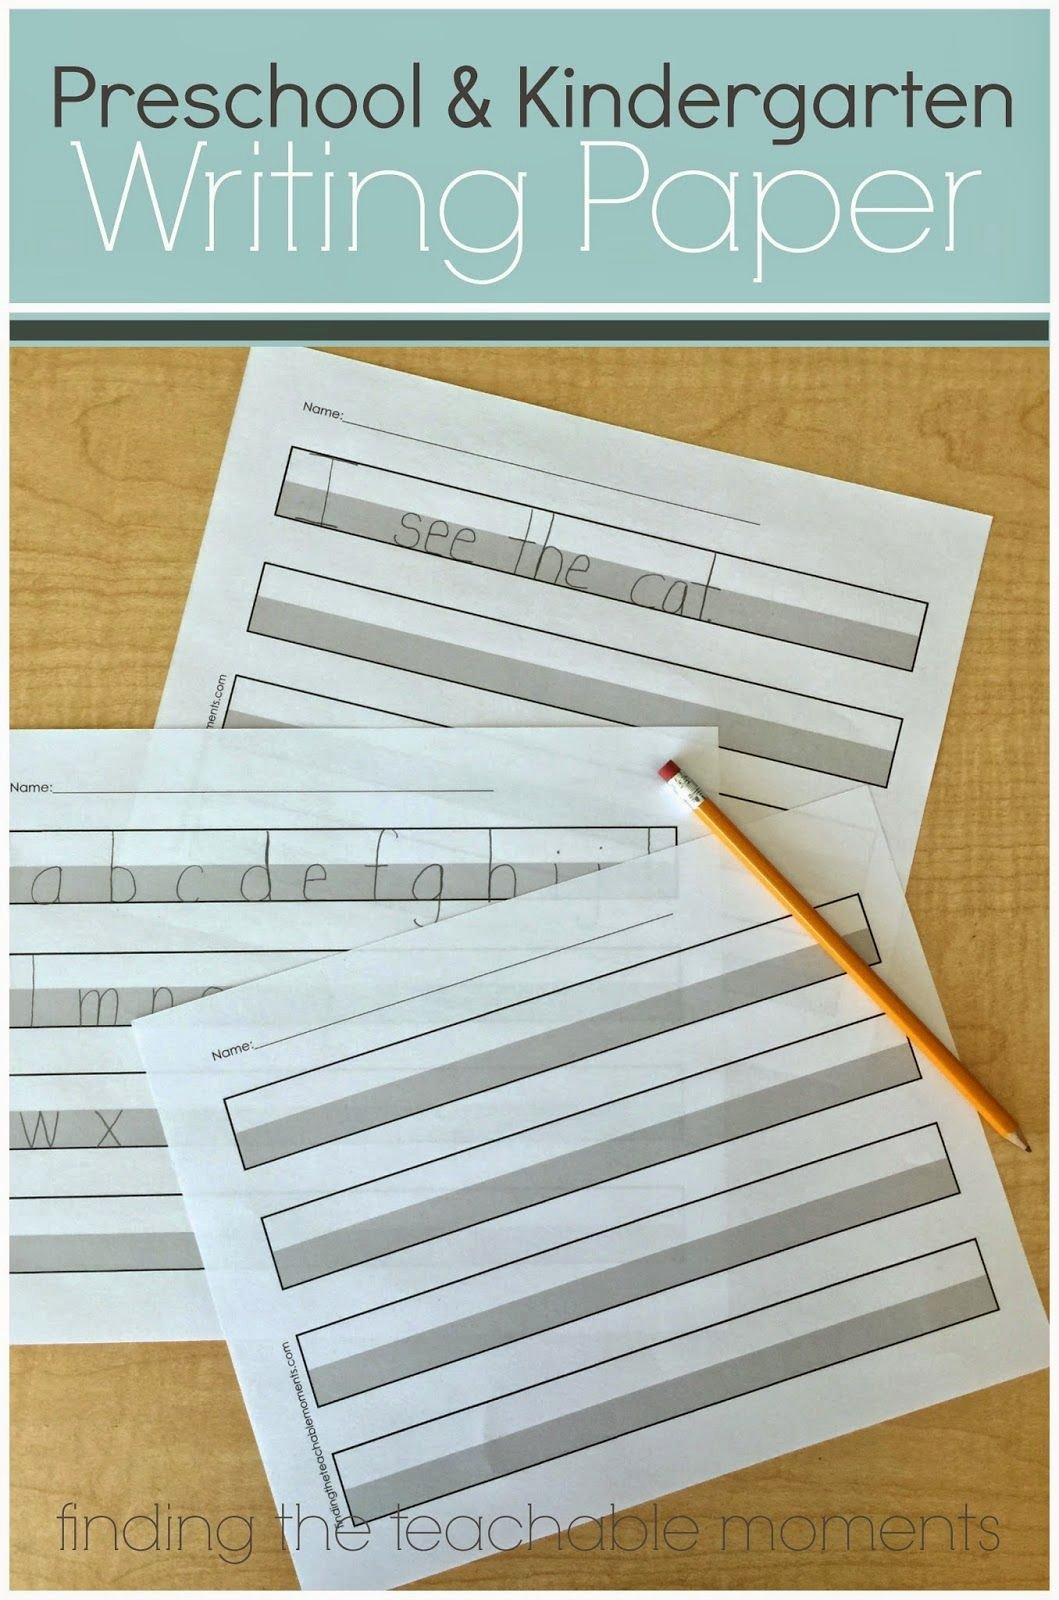 Printable Preschool Writing Paper Fresh the 25 Best Letter Size Ideas On Pinterest